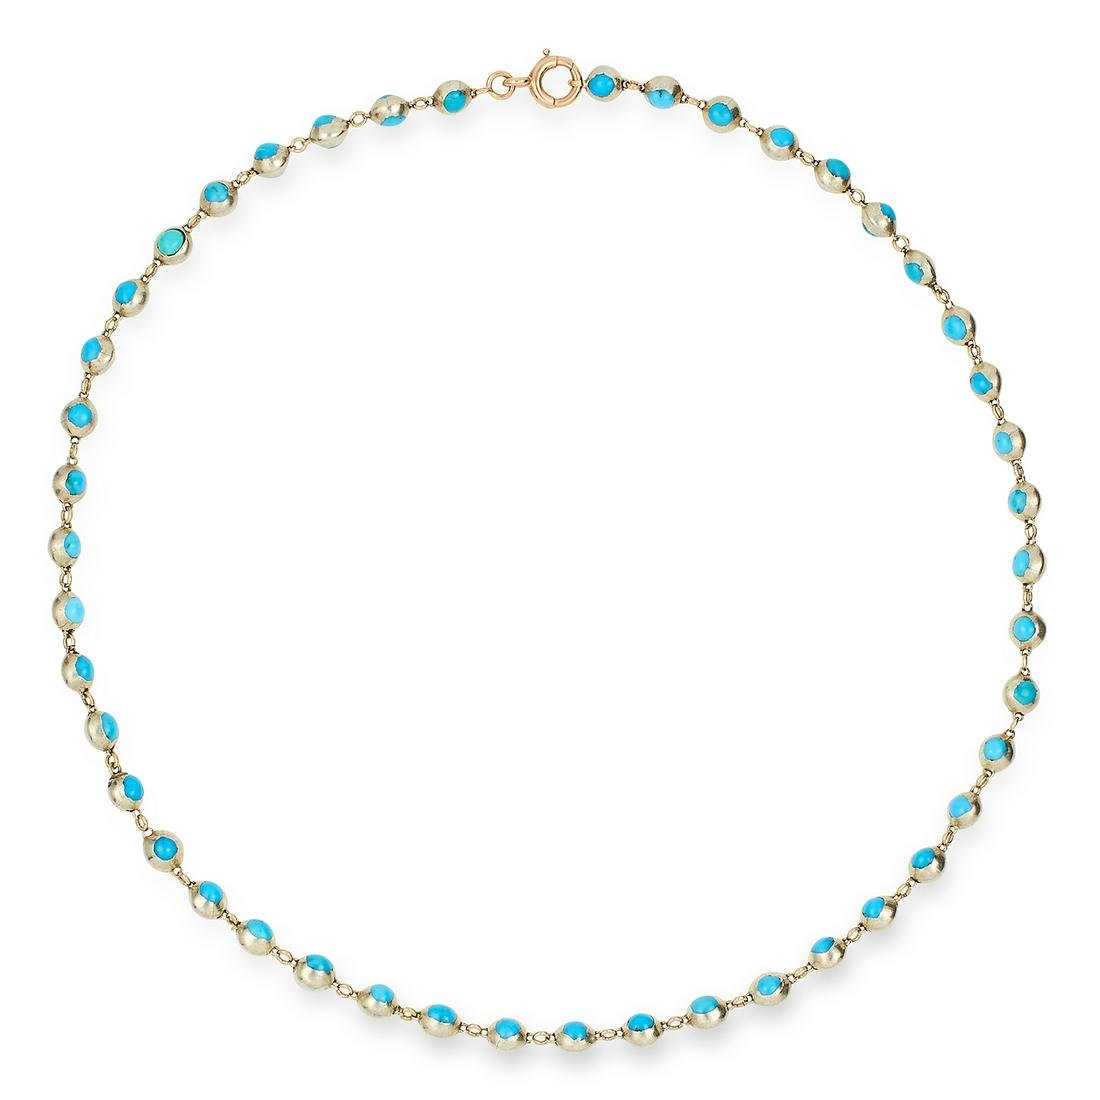 TURQUOISE BEAD NECKLACE comprising of a single row of